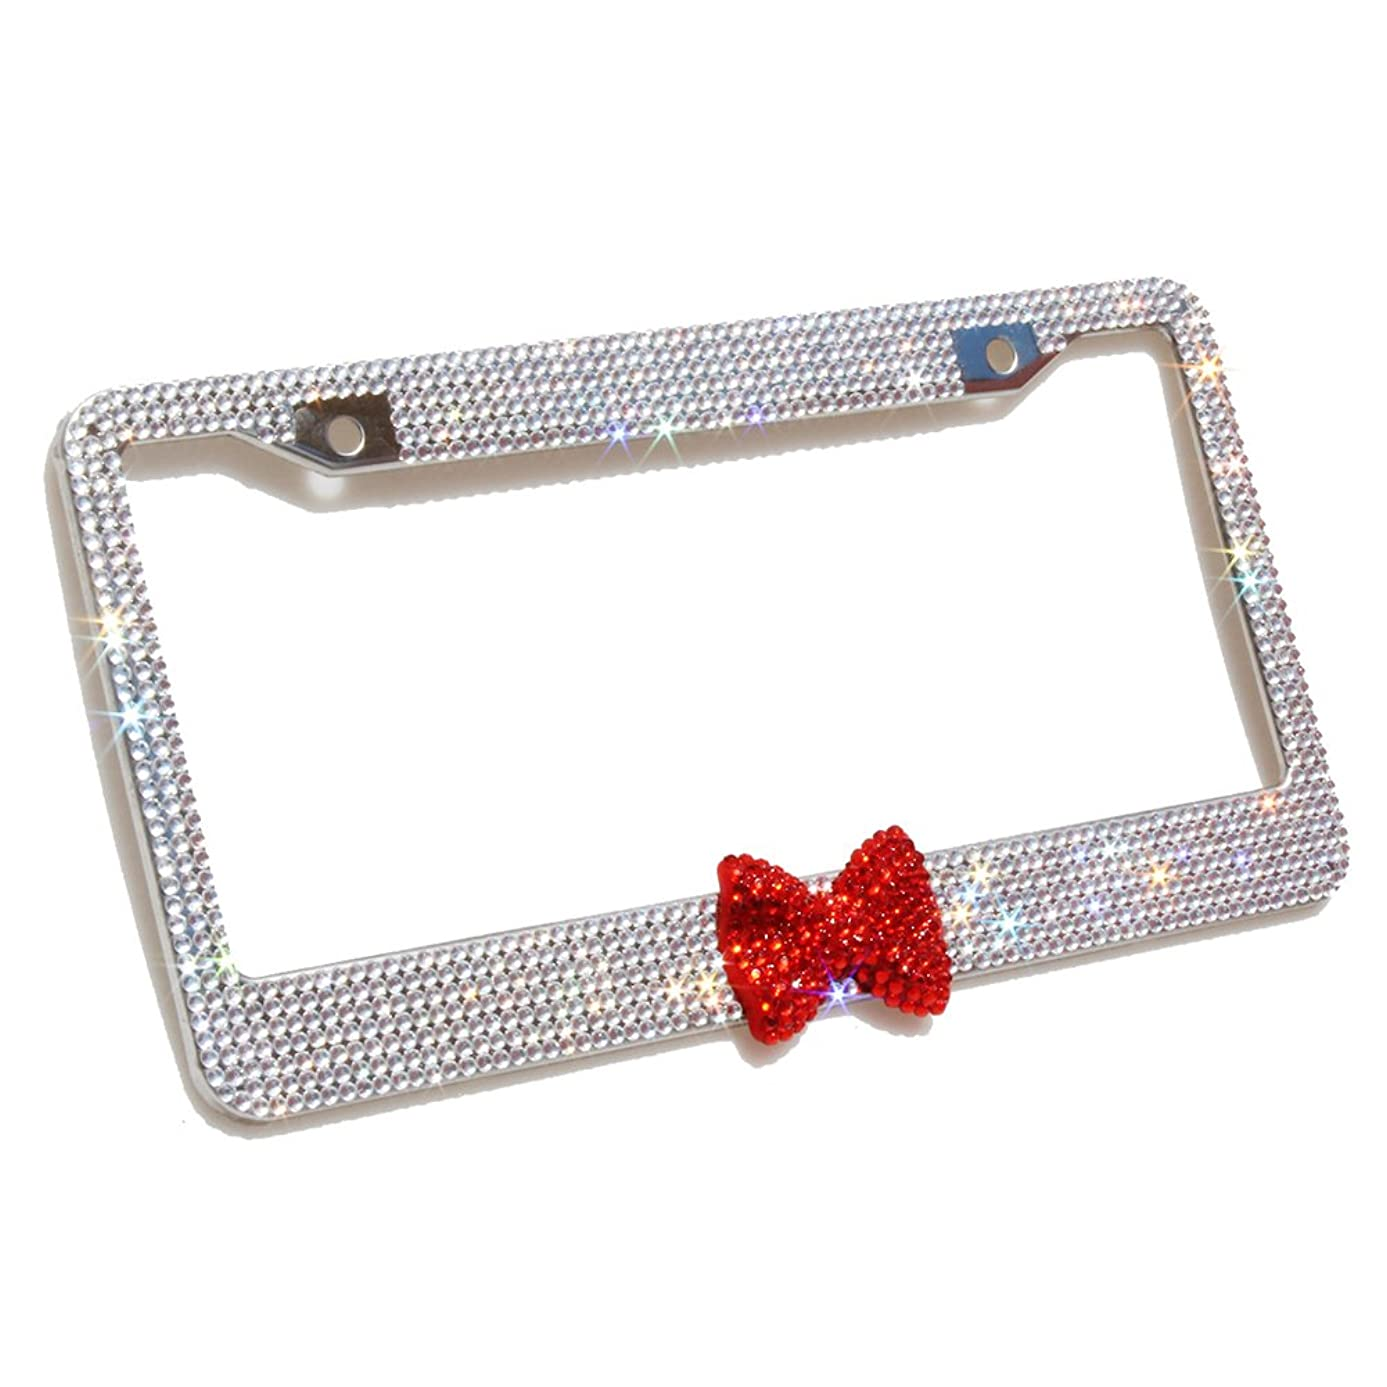 Carfond 7 Row Pure Handmade Waterproof Bling Bling Rhinestones Stainless Steel License Plate Frame with HOT Red Bow 2 Holes Bonus Matching Screws & Caps (Clear/red Bowtie)